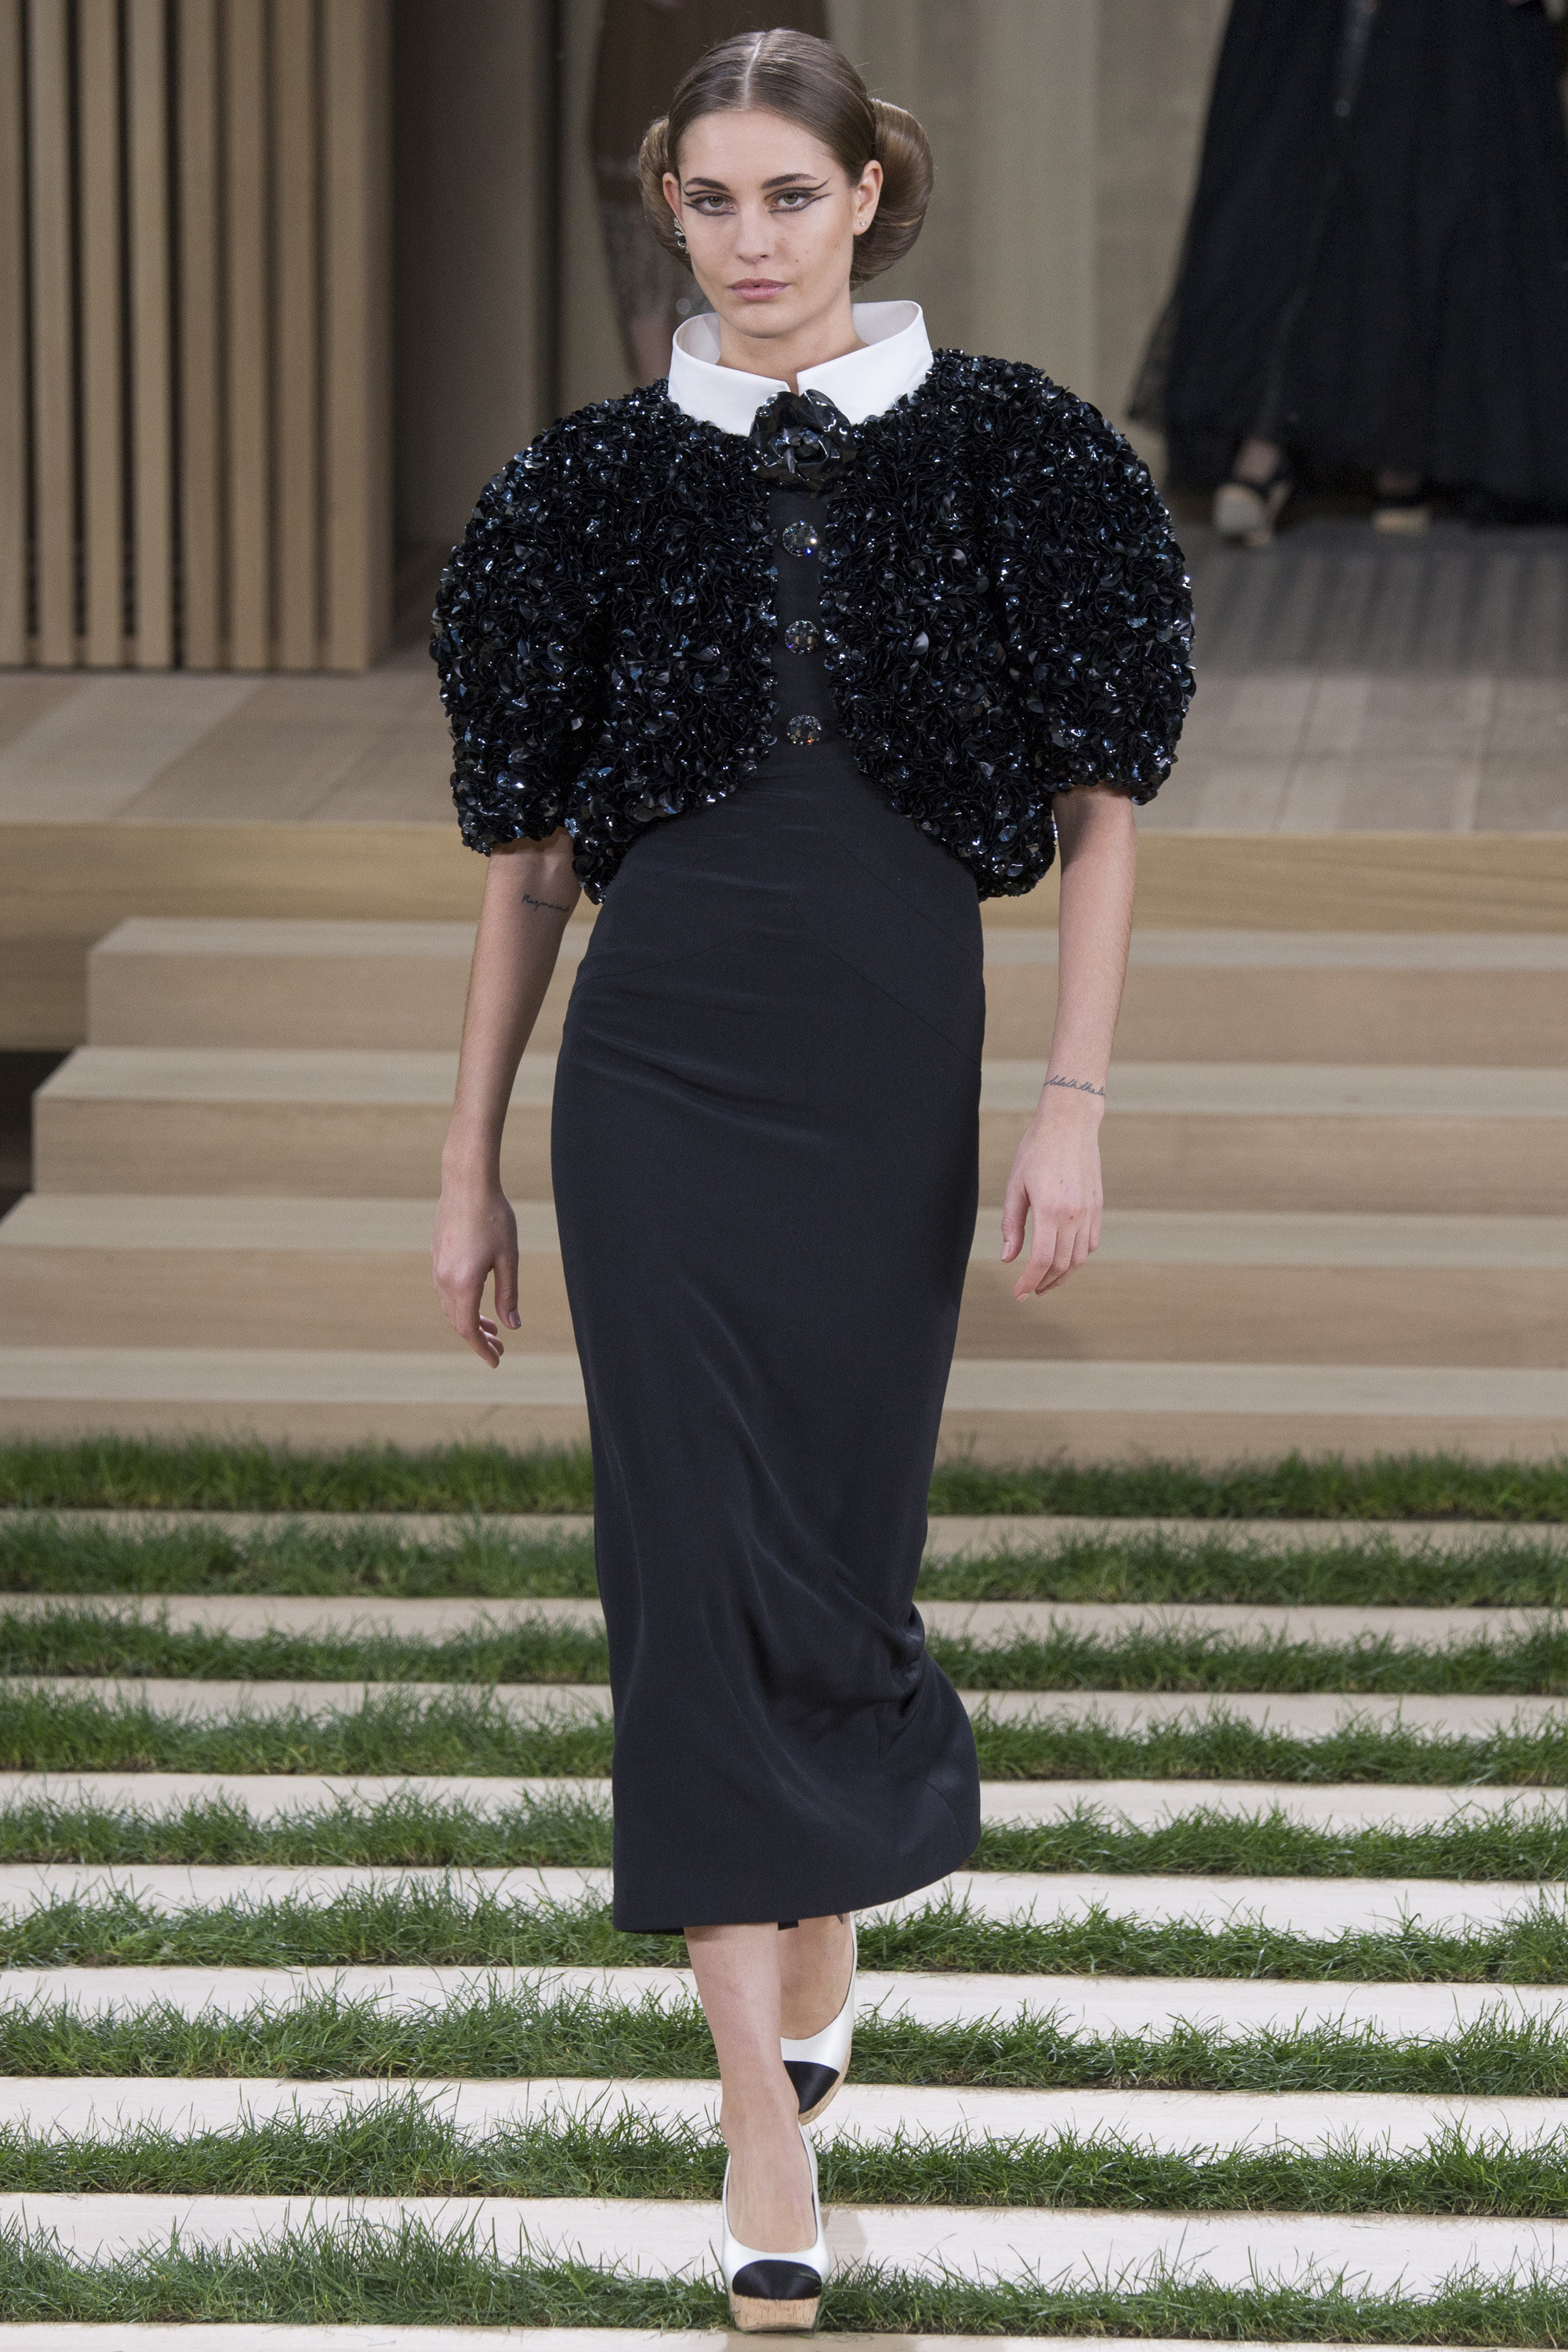 Chanel-Couture-Spring-2016-Paris-Fashion-Week-14.jpg